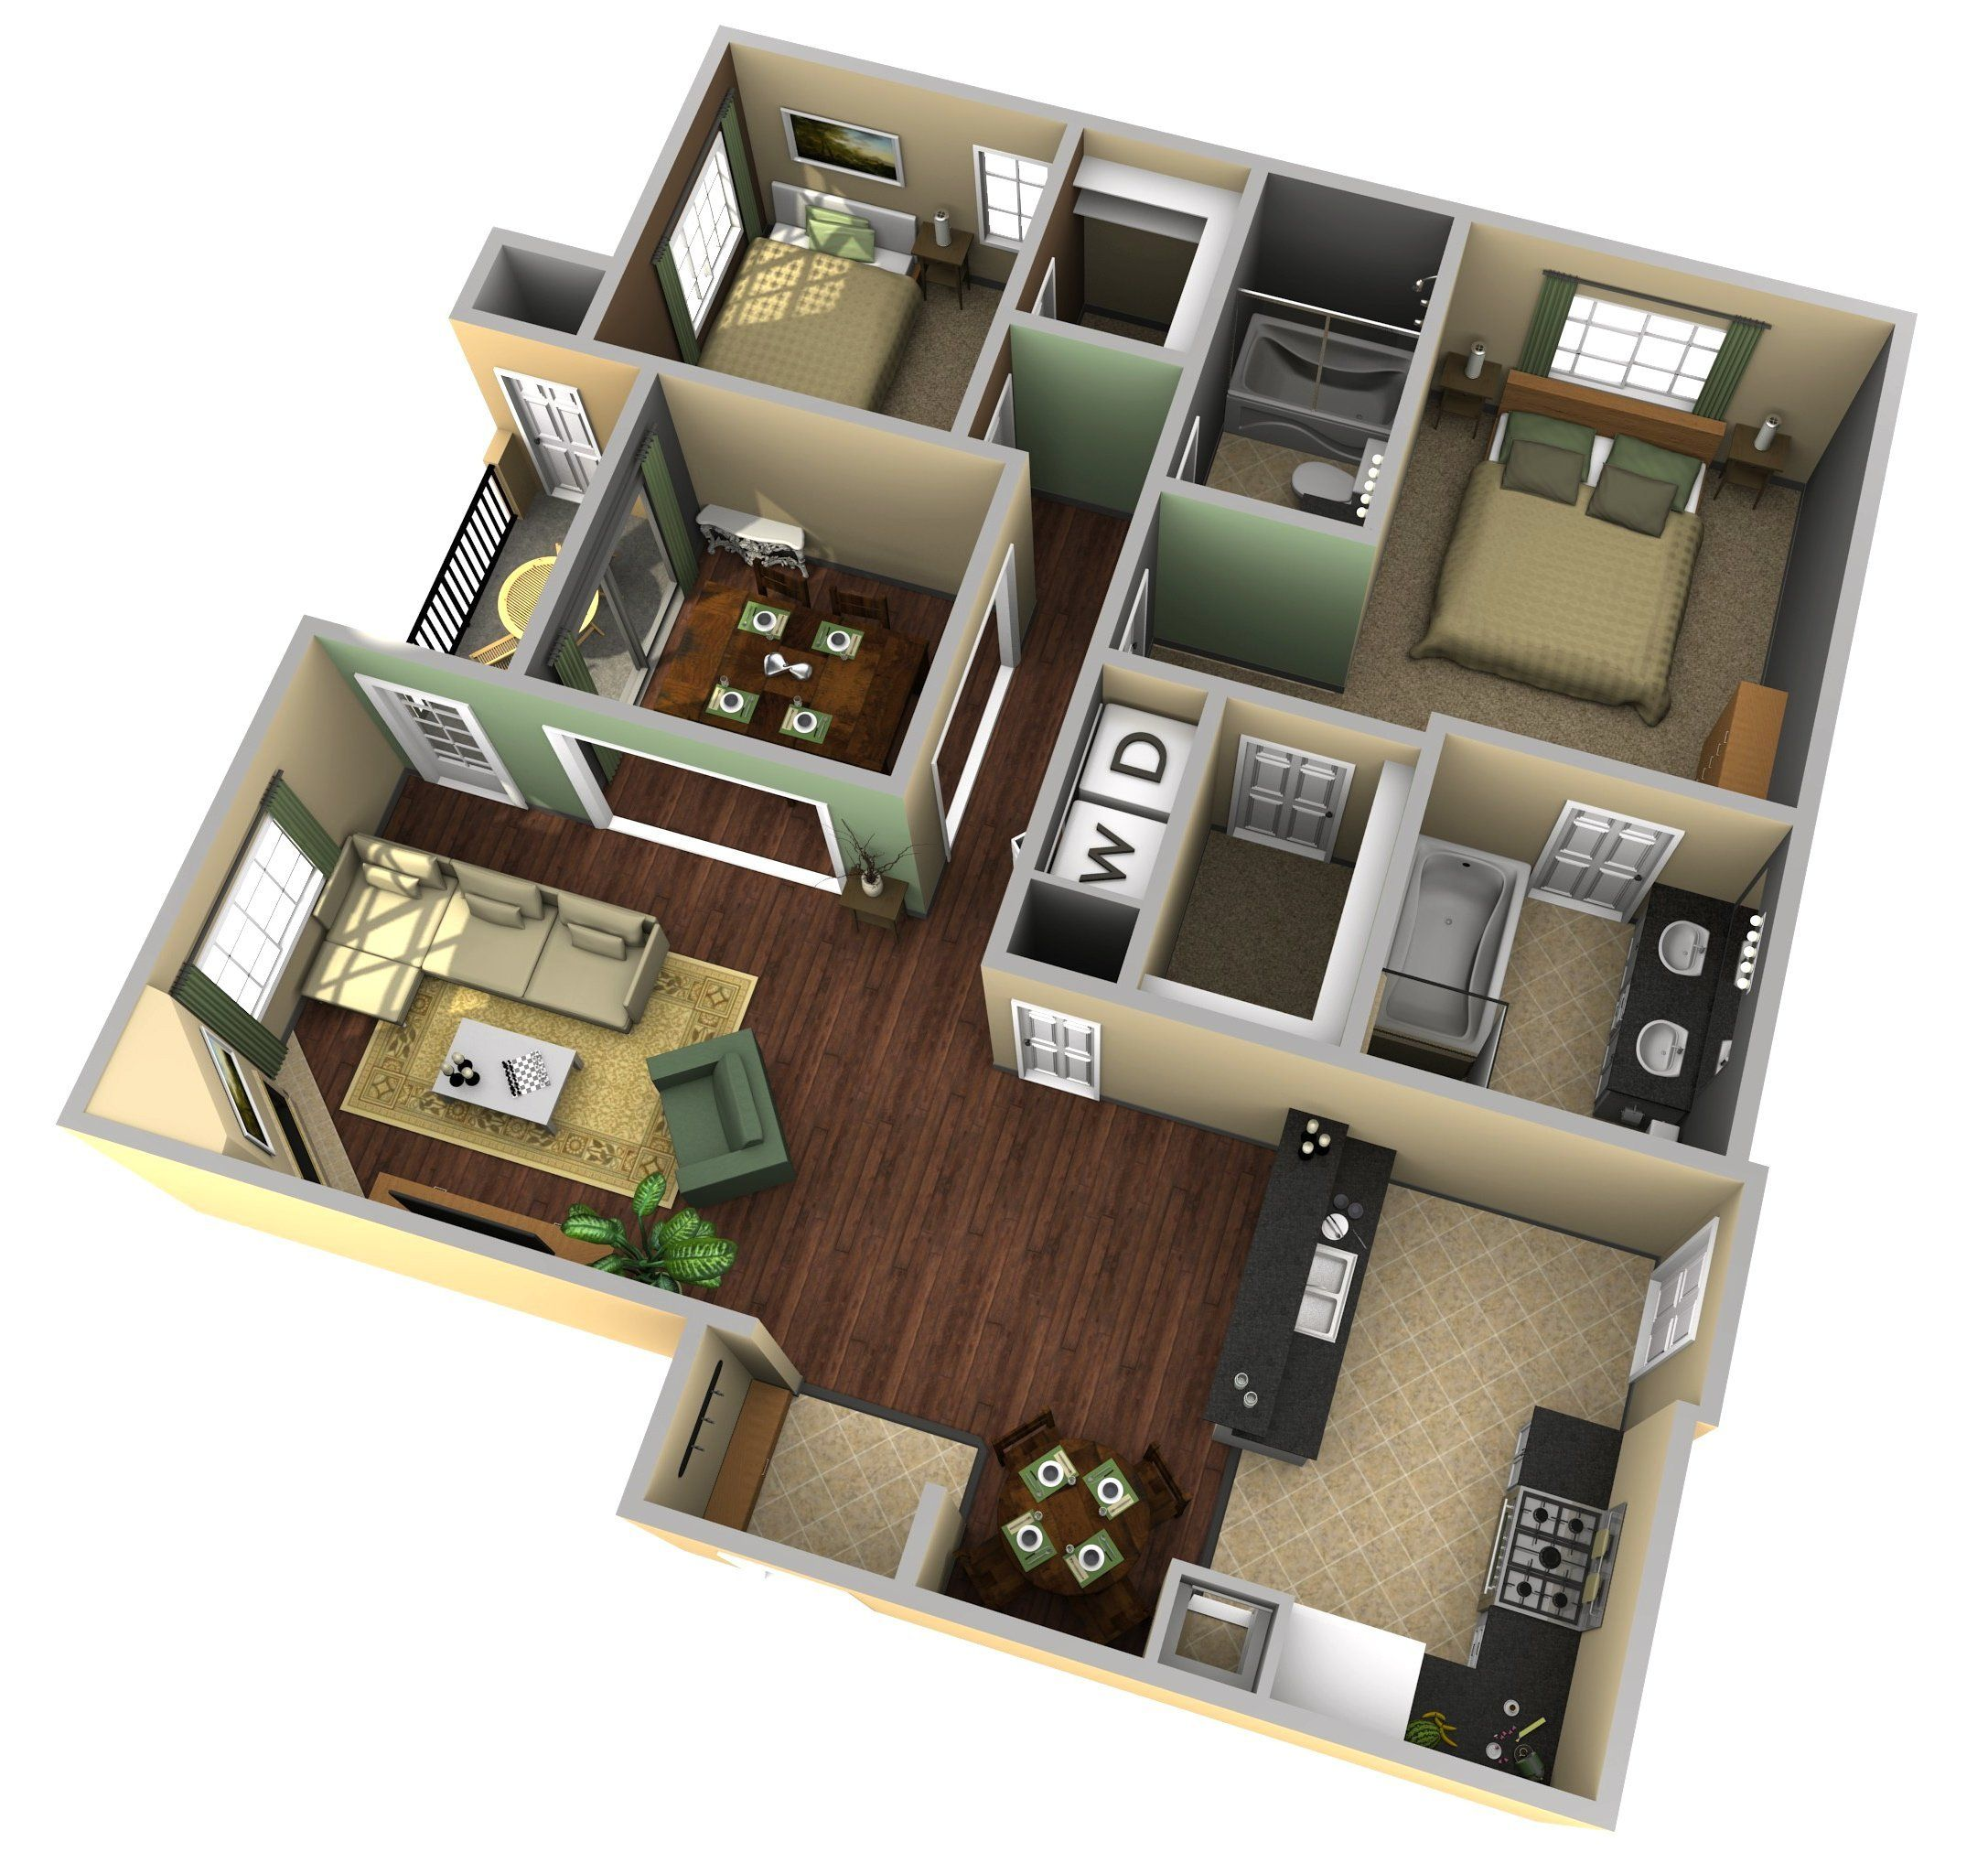 Bungalow 3d Floor Plan: Create A 3D Floor Plan Model From An Architectural